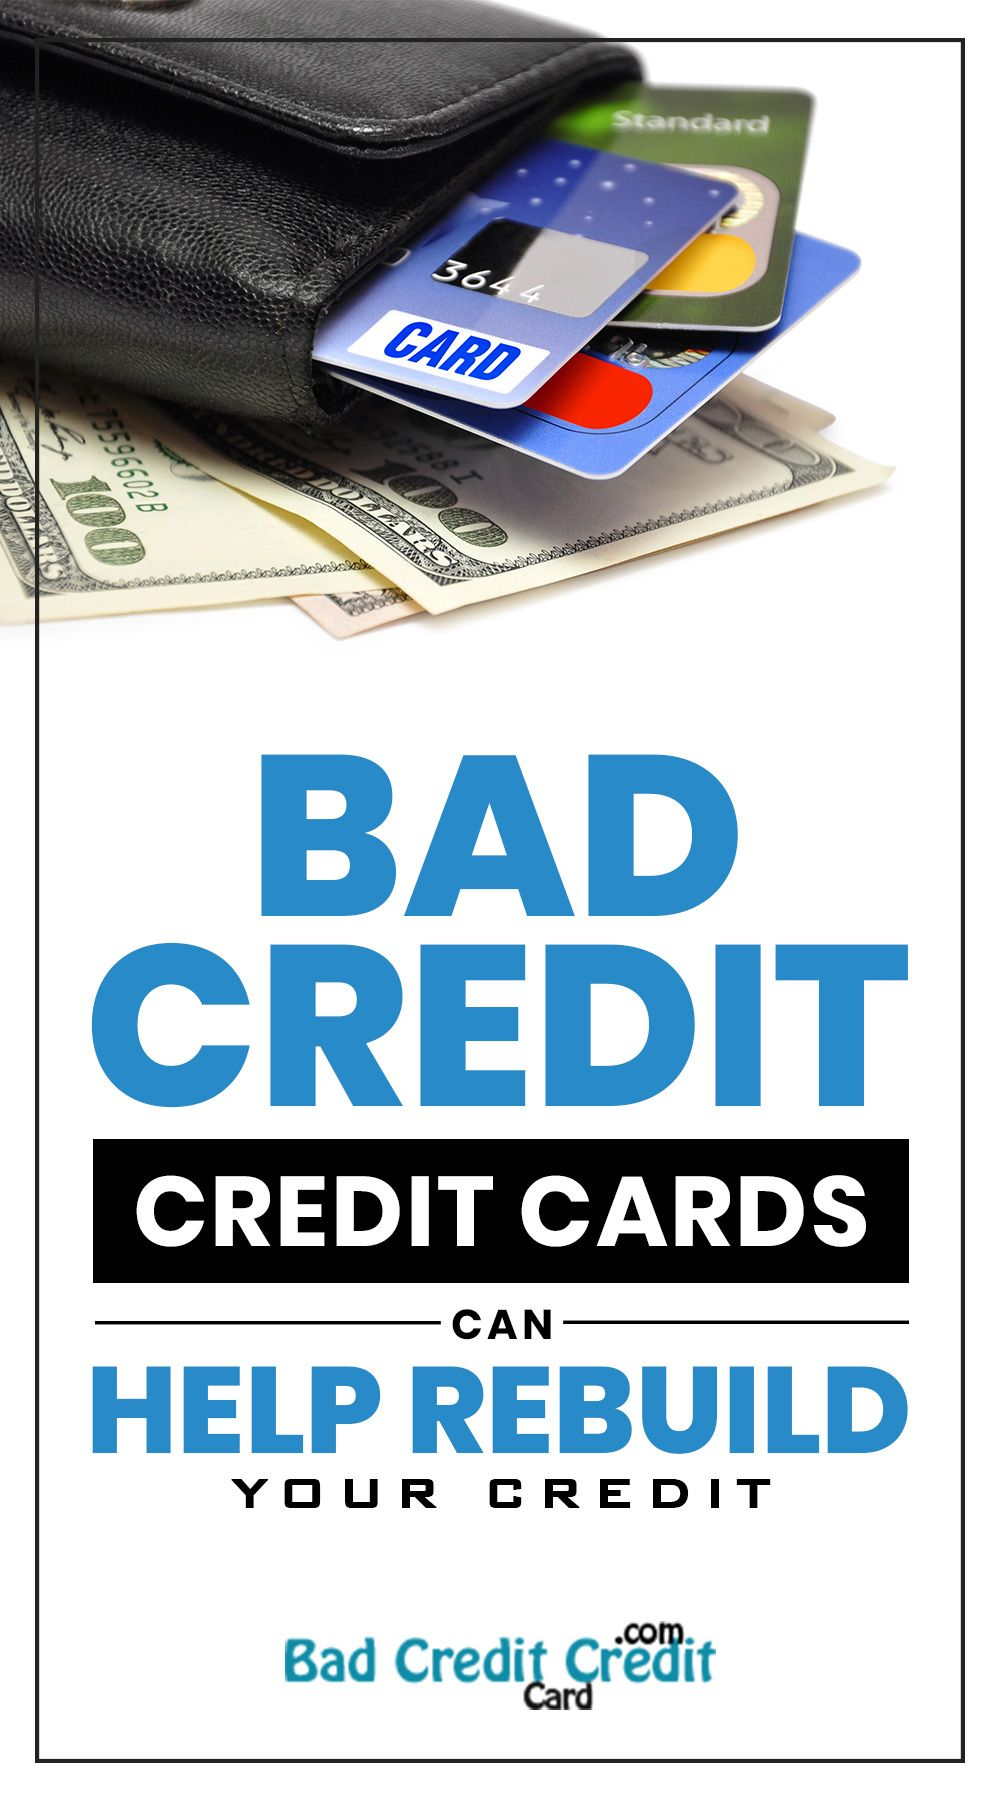 Bad Credit Credit Cards >> Bad Credit Credit Cards Can Help Rebuild Your Credit If You